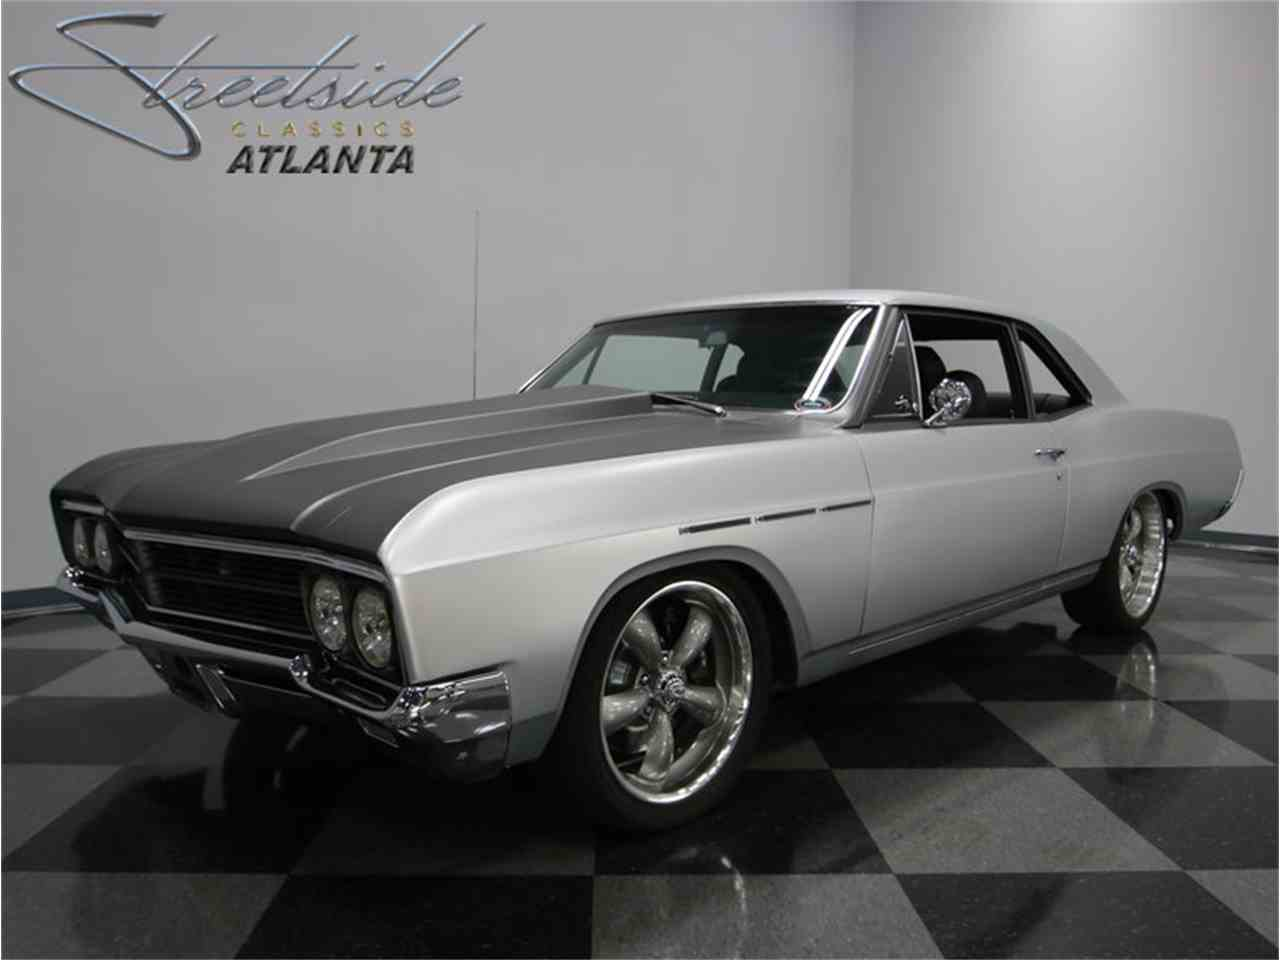 Large Picture of 1966 Buick Skylark Pro Touring located in Lithia Springs Georgia - $36,995.00 - L93D